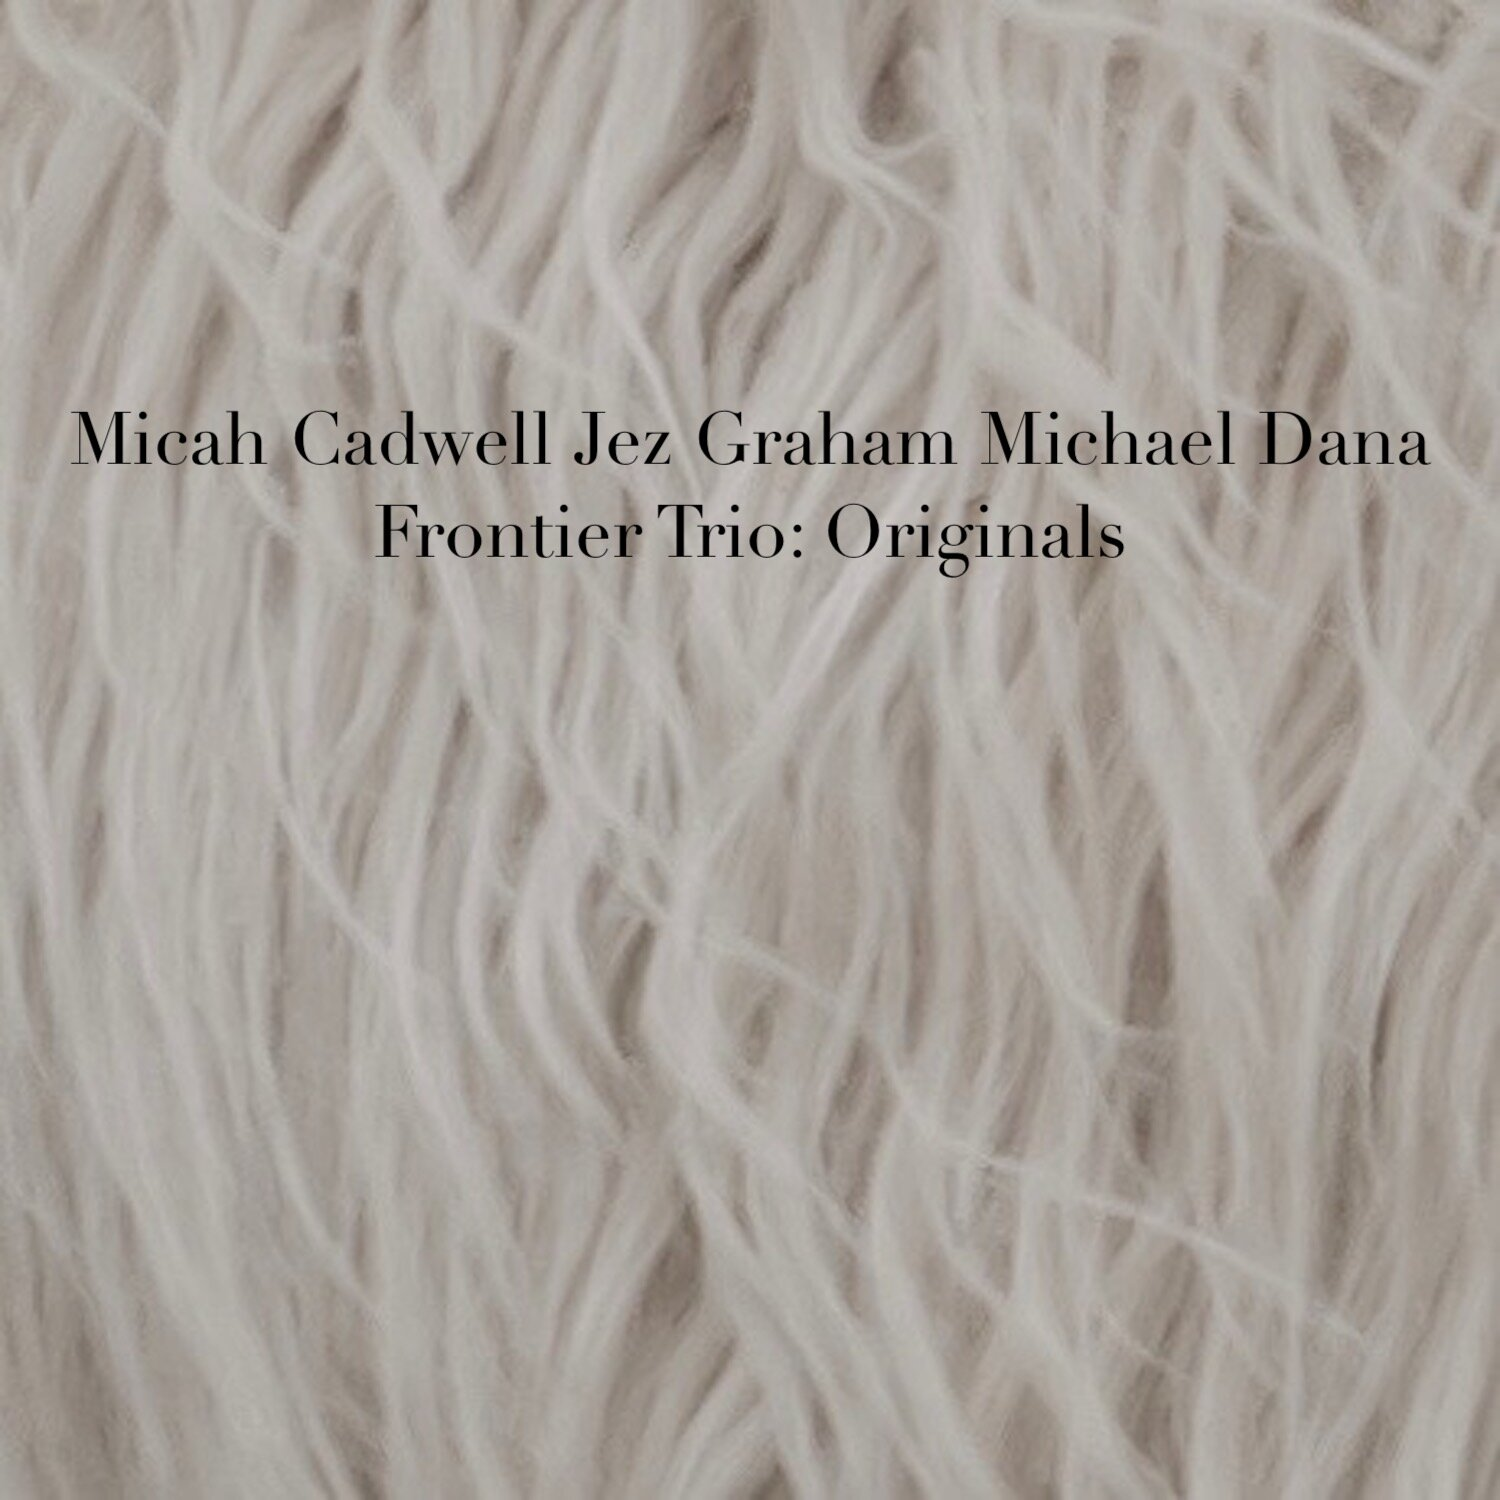 Frontier Trio: Originals Click HERE to listen - This is a collection of original songs written by Micah Cadwell and performed with Frontier Trio, Jez Graham and Michael Dana. These will also be available on Frontier Trio Vol 1 & 2. Recorded on July 20 and 27, 2019. Engineered, Mixed, and Mastered by Damon Moon at Standard Electric Recorders. Cover Photography by Andrew Kowalczyk.